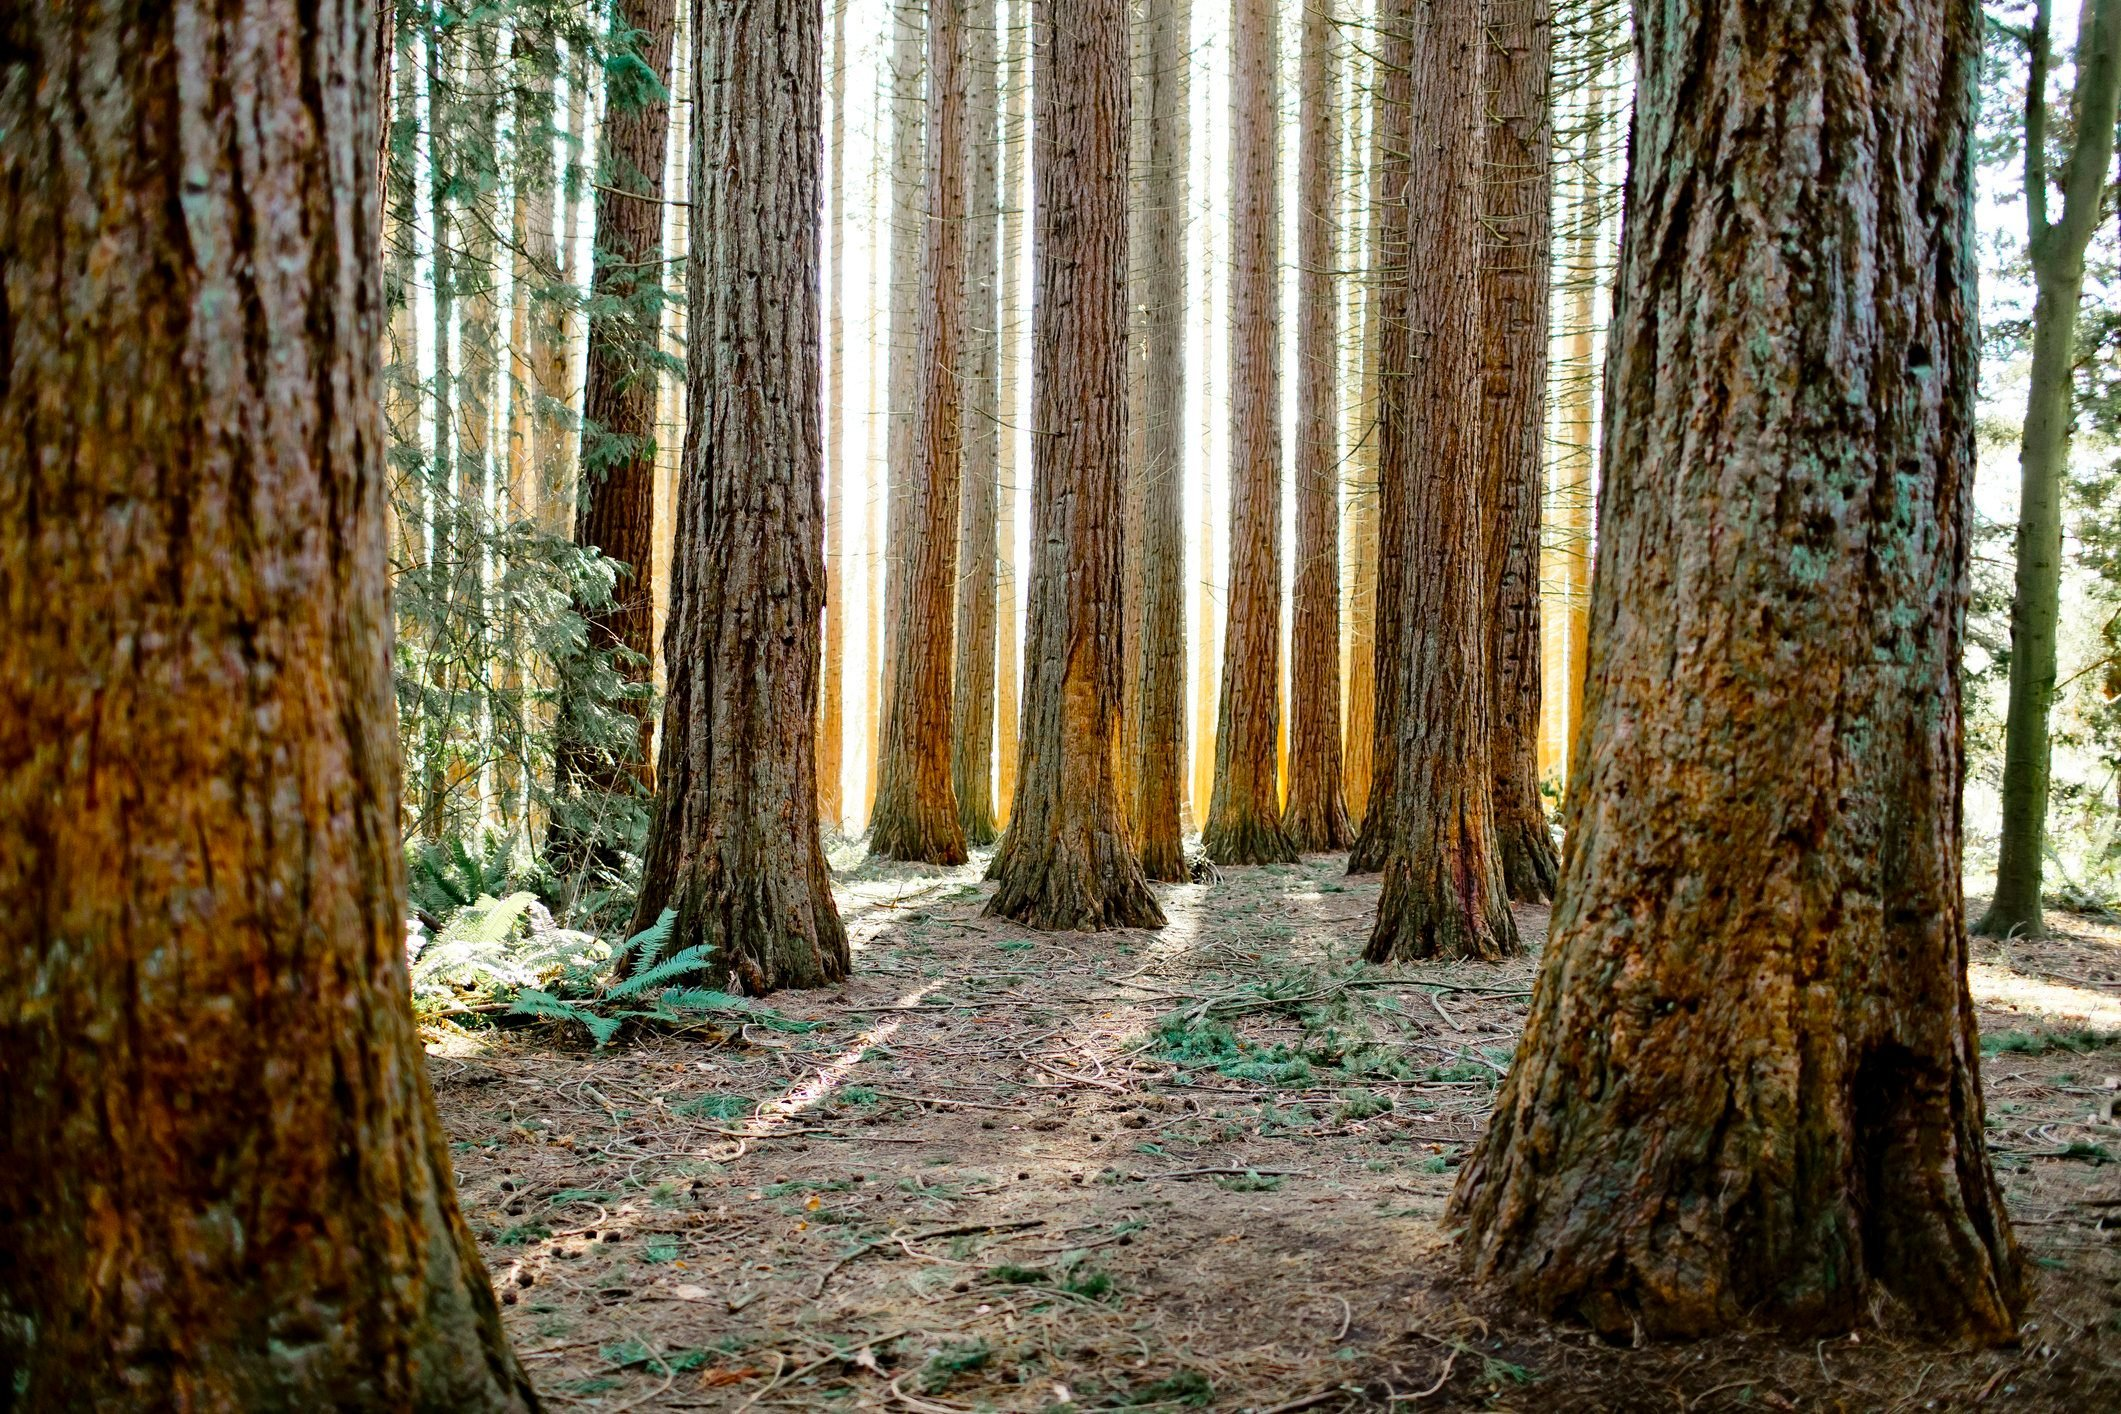 Backlit Redwood forest, (Sequoioideae) coniferous tree